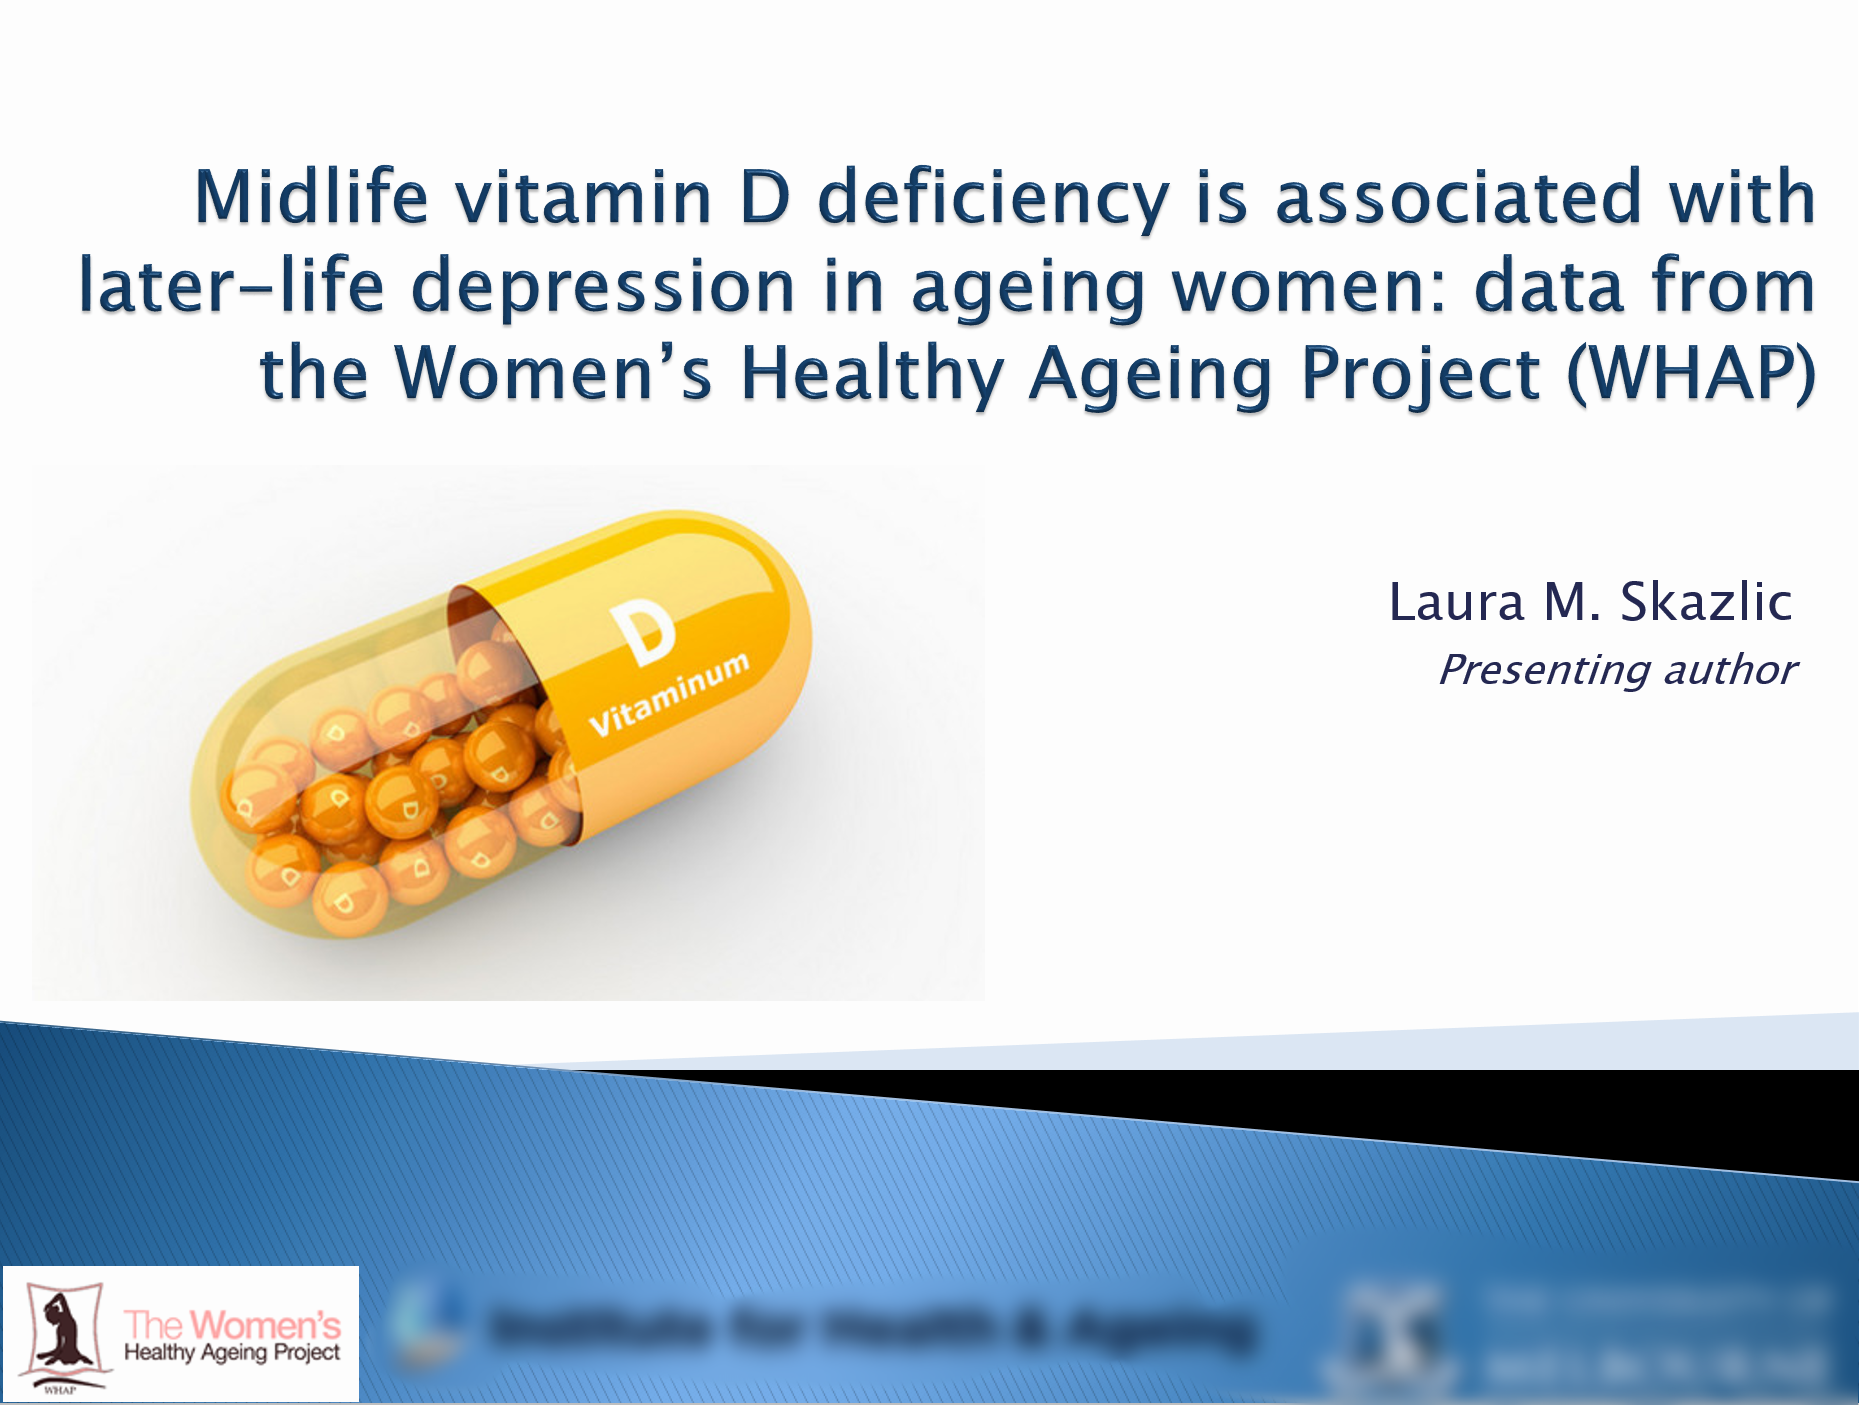 Midlife vitamin D deficiency is associated with later-life depression in ageing women - The objective of this research was to investigate the association between midlife vitamin D deficiency and a decade of depressive symptoms in ageing Australian women. The study found that lower levels of vitamin D were associated with greater depressive symptoms in Australian women aged over 55 years.Citation: Skazlic, L., et al. (2017). Midlife vitamin D deficiency is associated with later-life depression in ageing women. Paper presented at the 23rd World Congress of Neurology, Kyoto, Japan, 16-21 September.